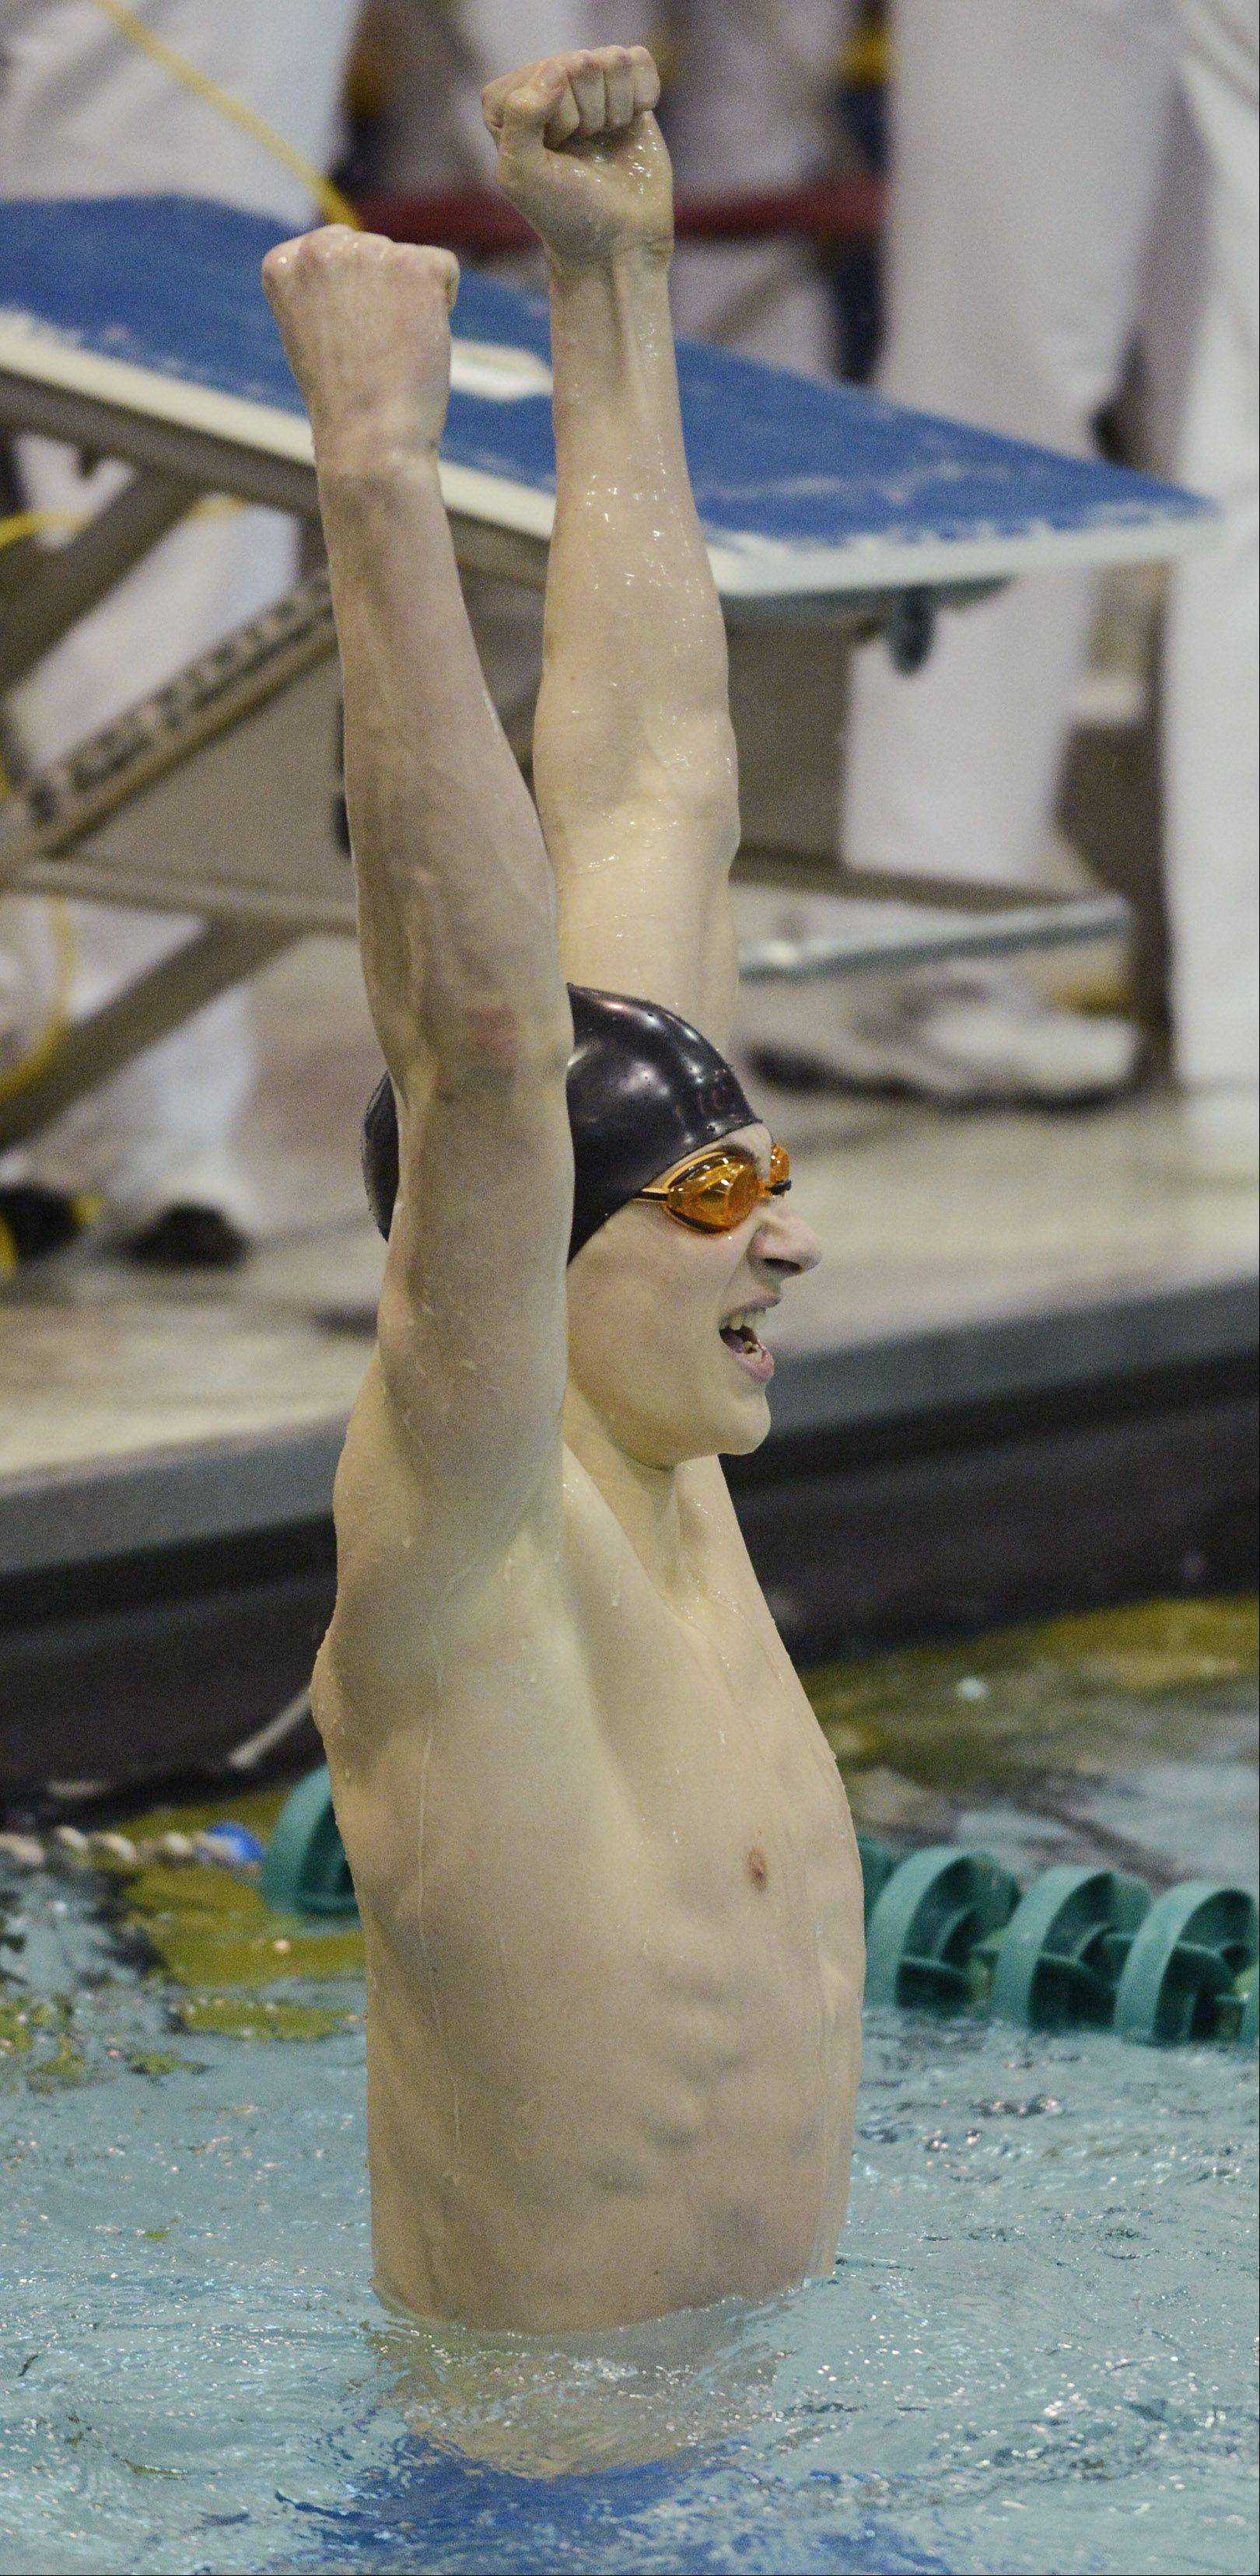 Mundelein's Connor Black celebrates after setting a state and national record in the 100-yard butterfly during the boys state swimming finals at New Trier High School in Winnetka Saturday.